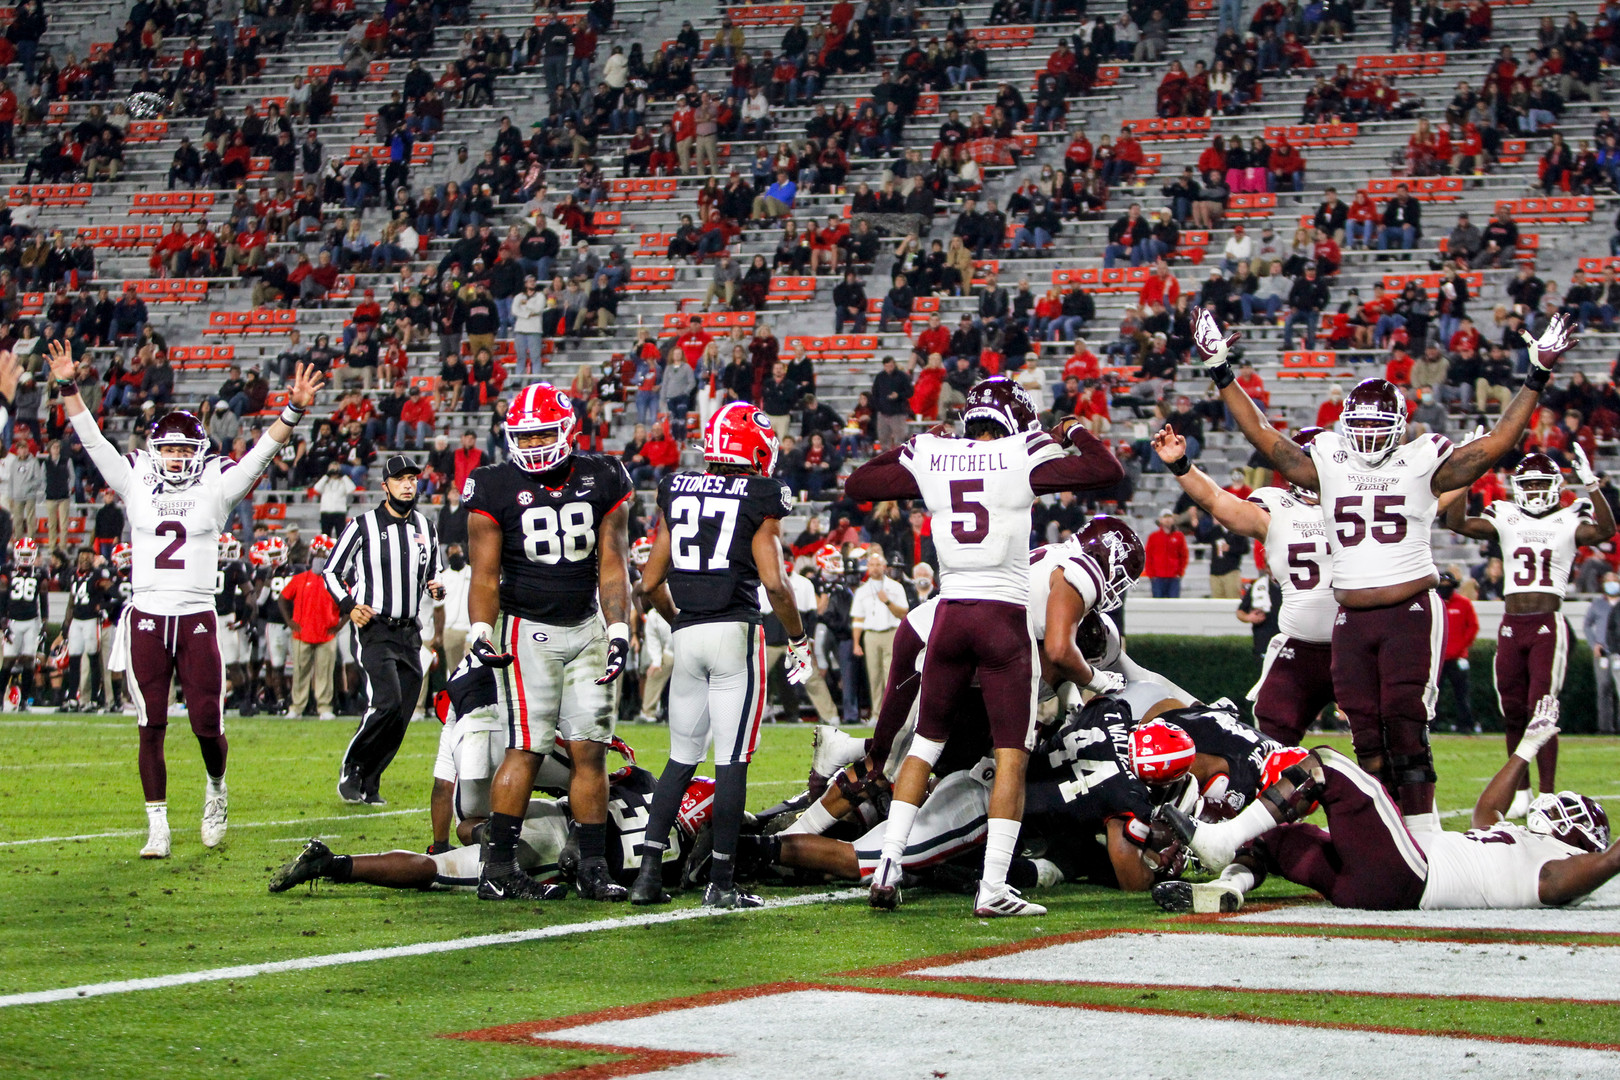 Mississippi State players celebrate a touchdown during the second half of the UGA versus Mississippi State football game in Athens, Georgia on Saturday, Nov. 21, 2020. UGA won the game 31-24.